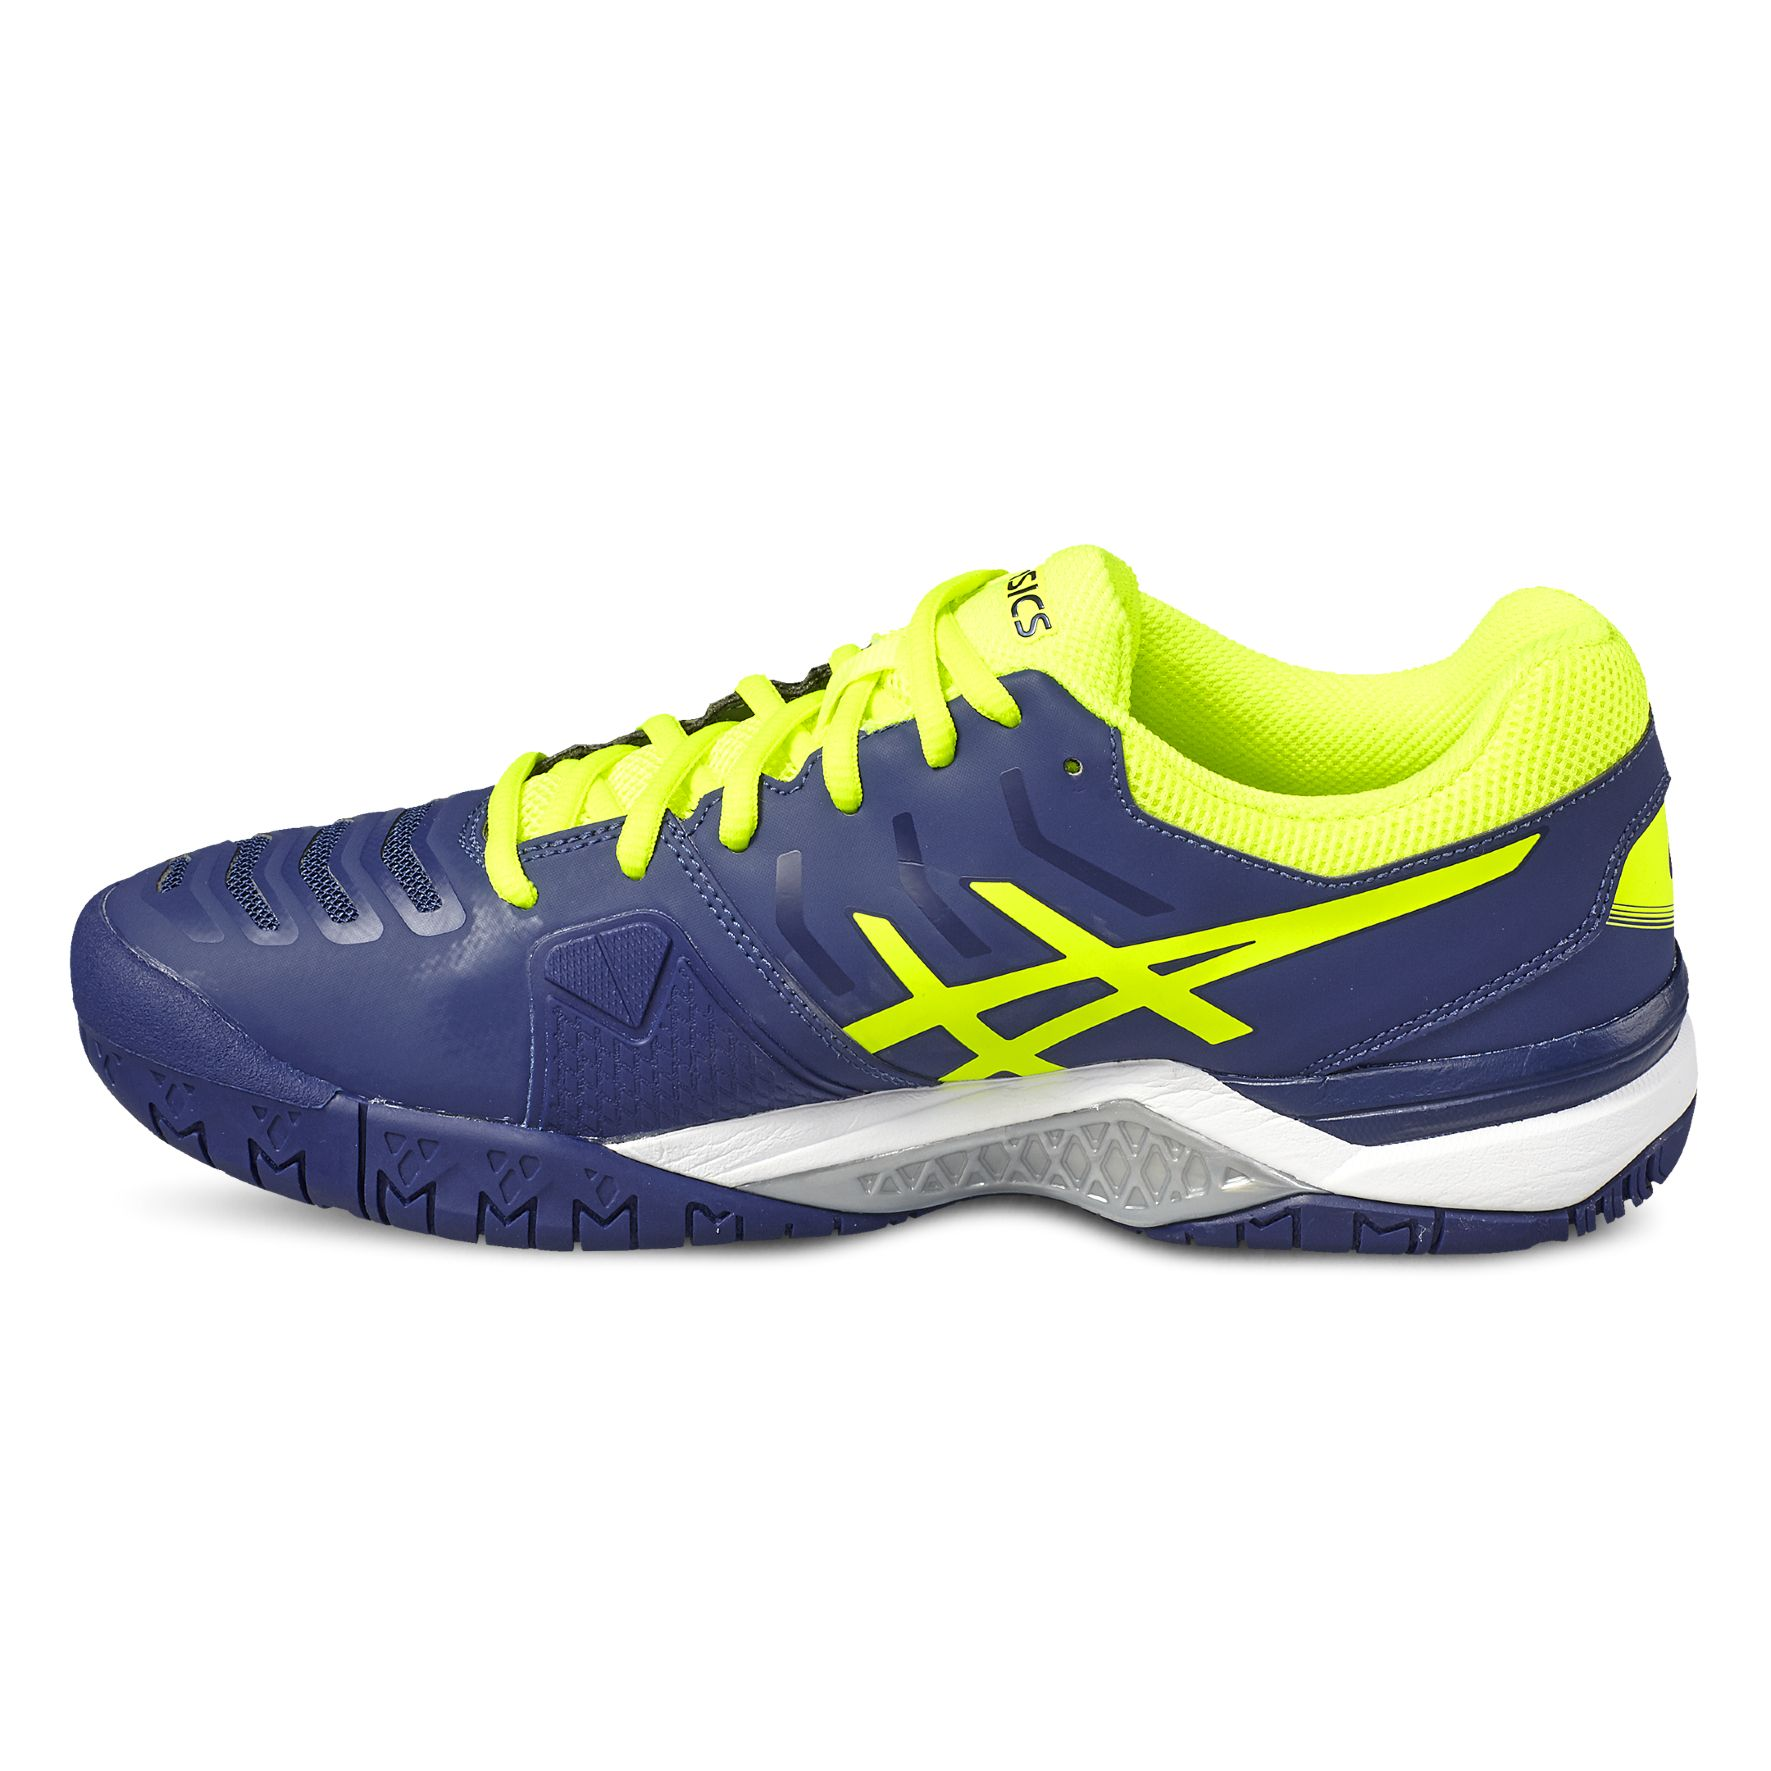 asics gel challenger 11 mens tennis shoes